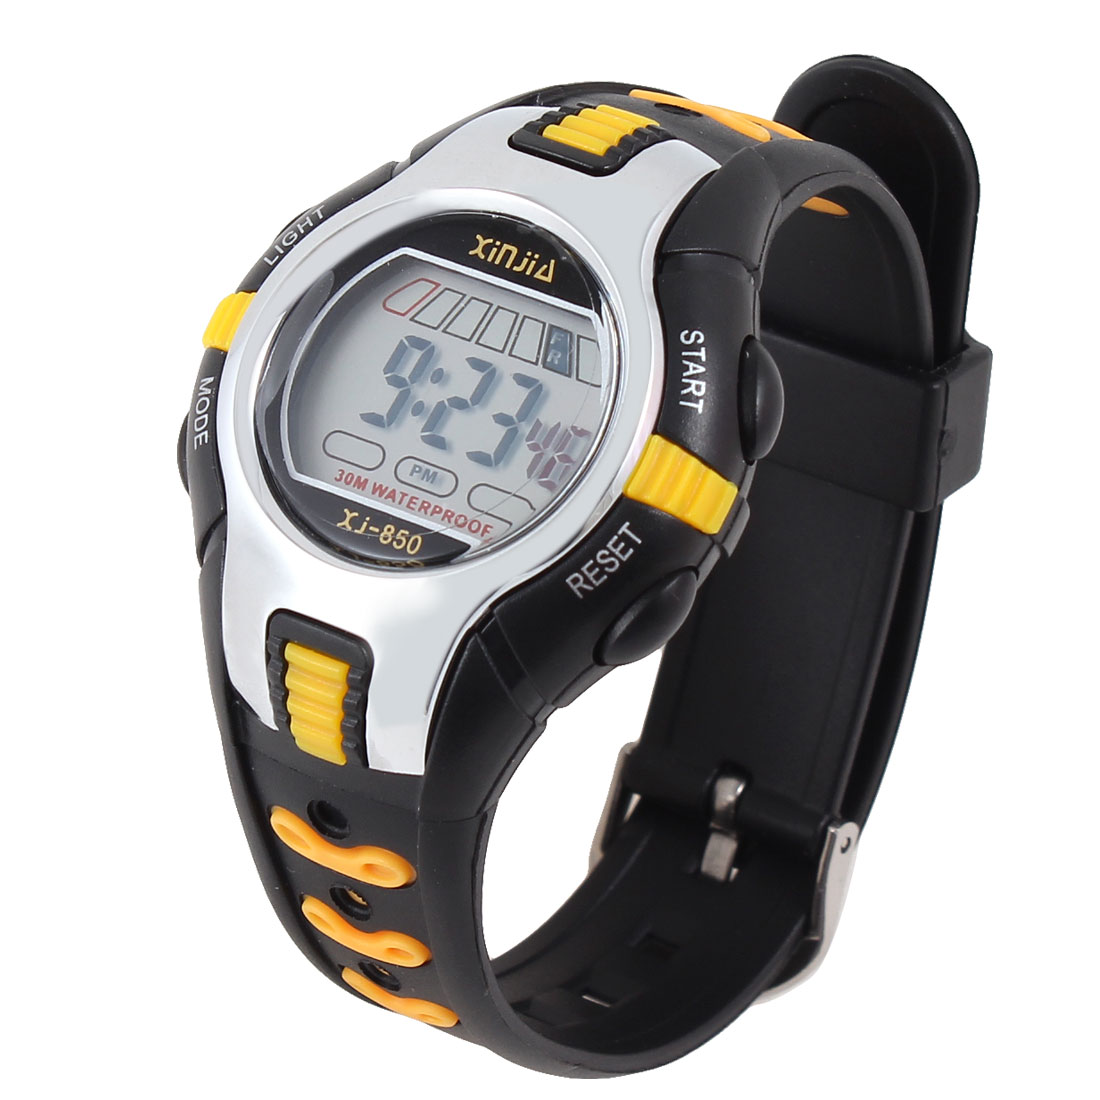 Black Orange Stopwatch Stage Timekeeping Snooze Function Sports Watch